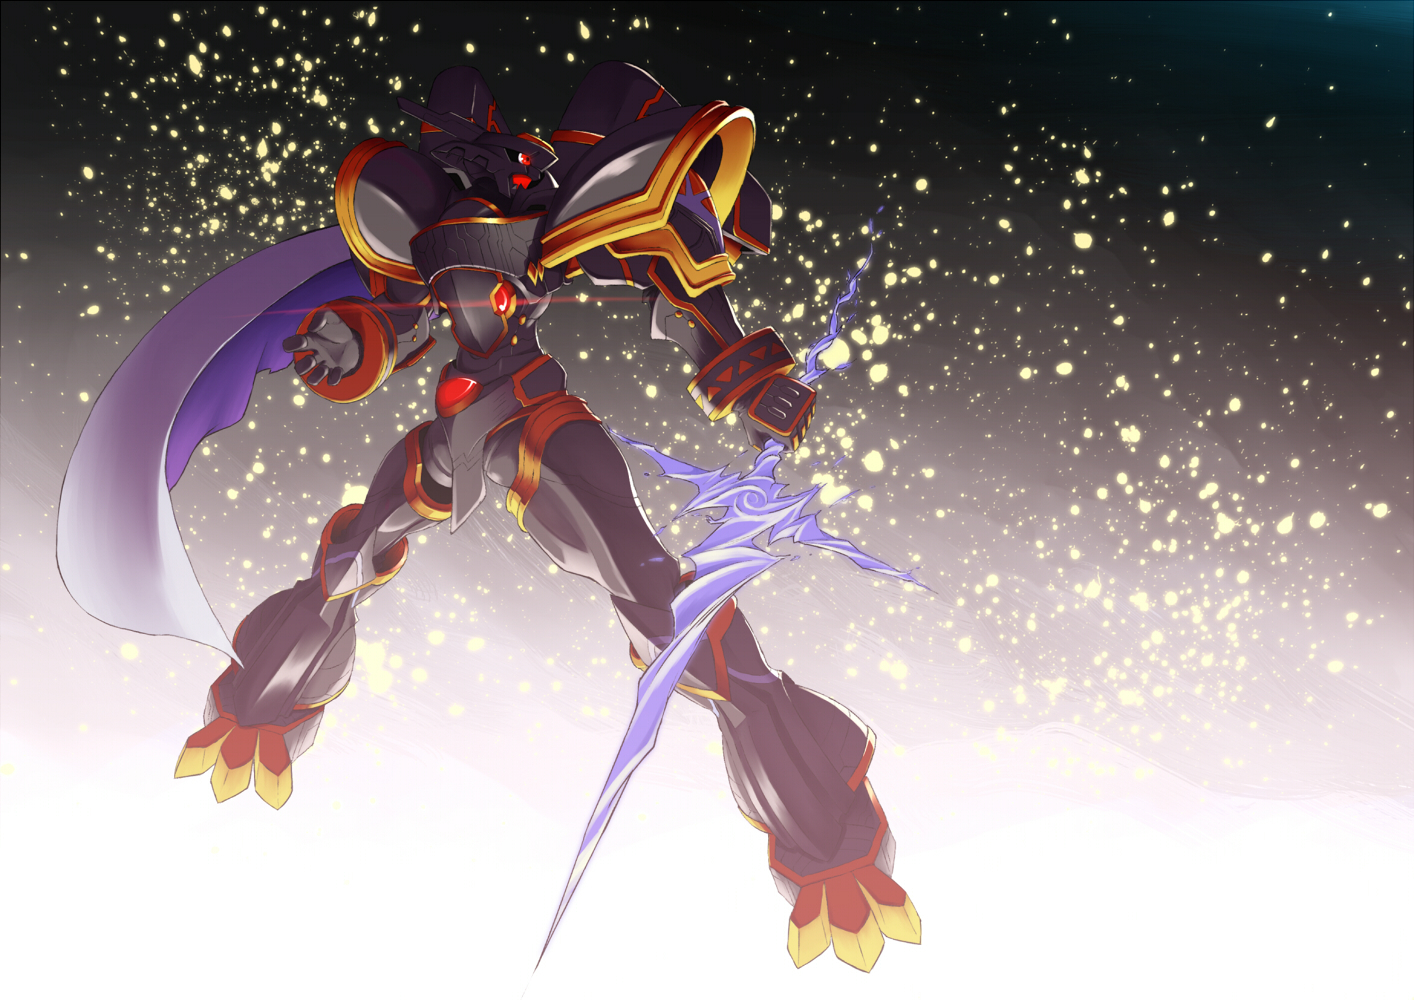 Alphamon - Digimon Adventure - Zerochan Anime Image Board